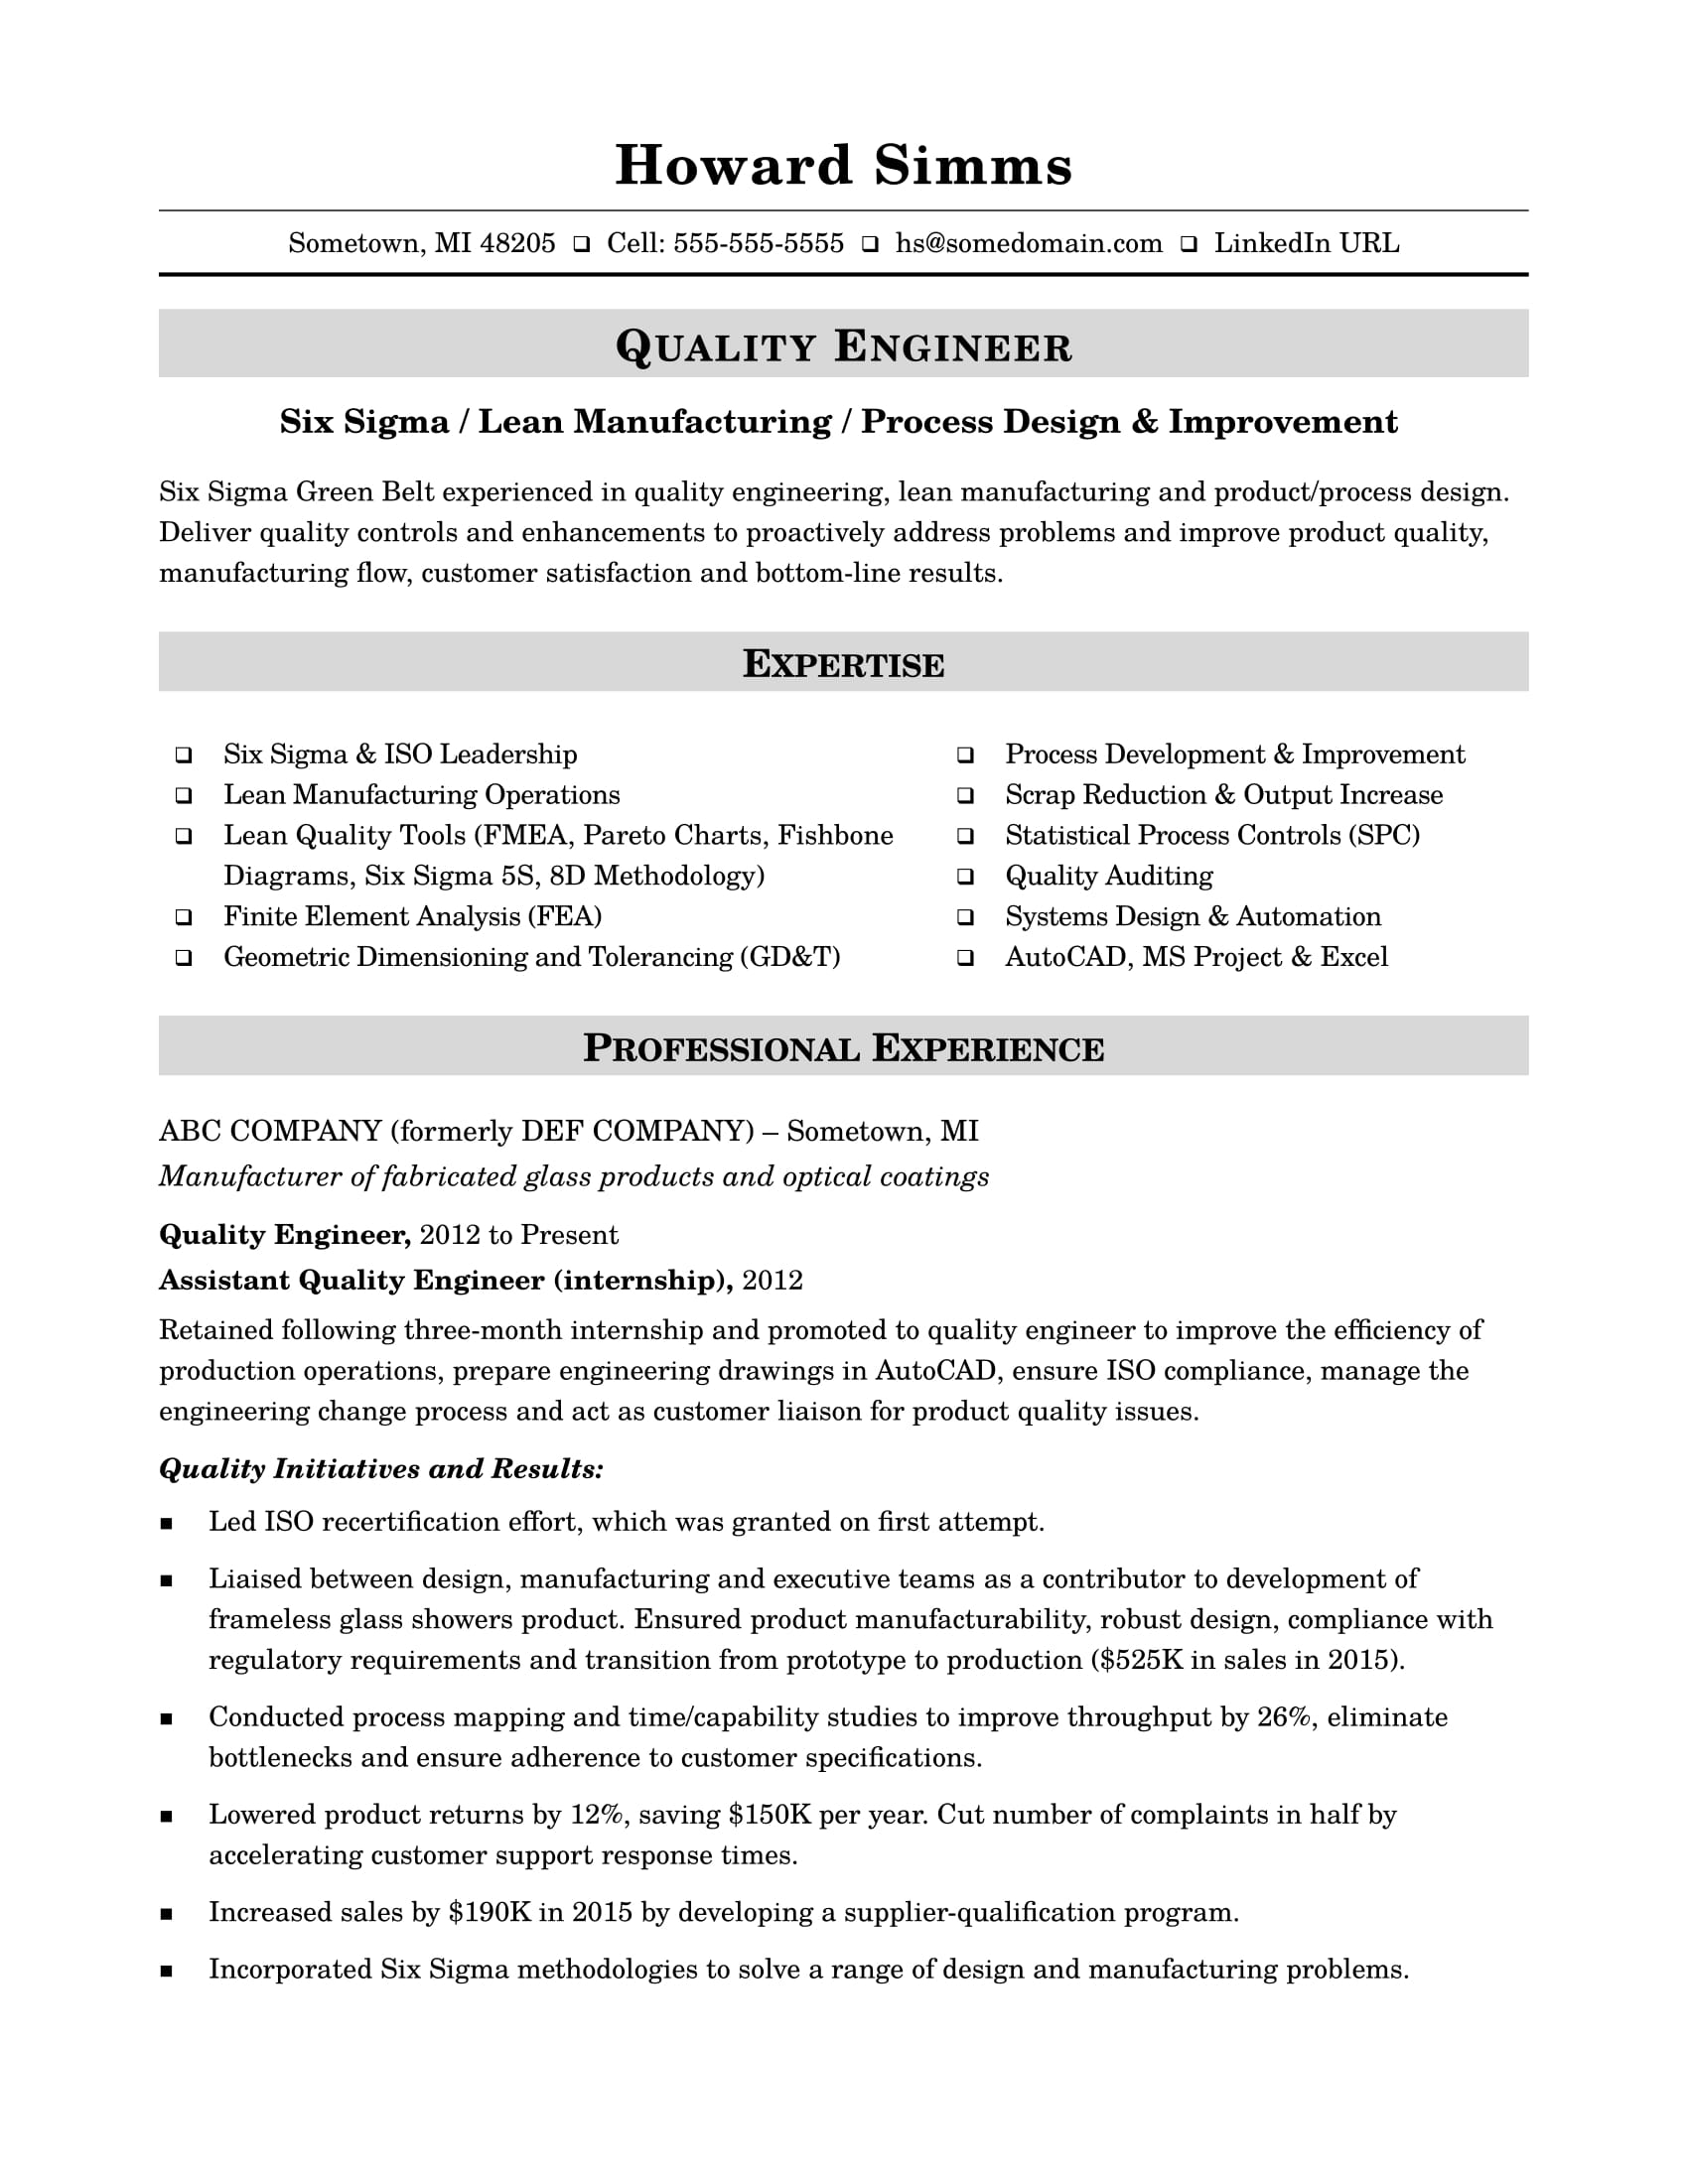 Sample Resume For A Midlevel Quality Engineer Monster Com